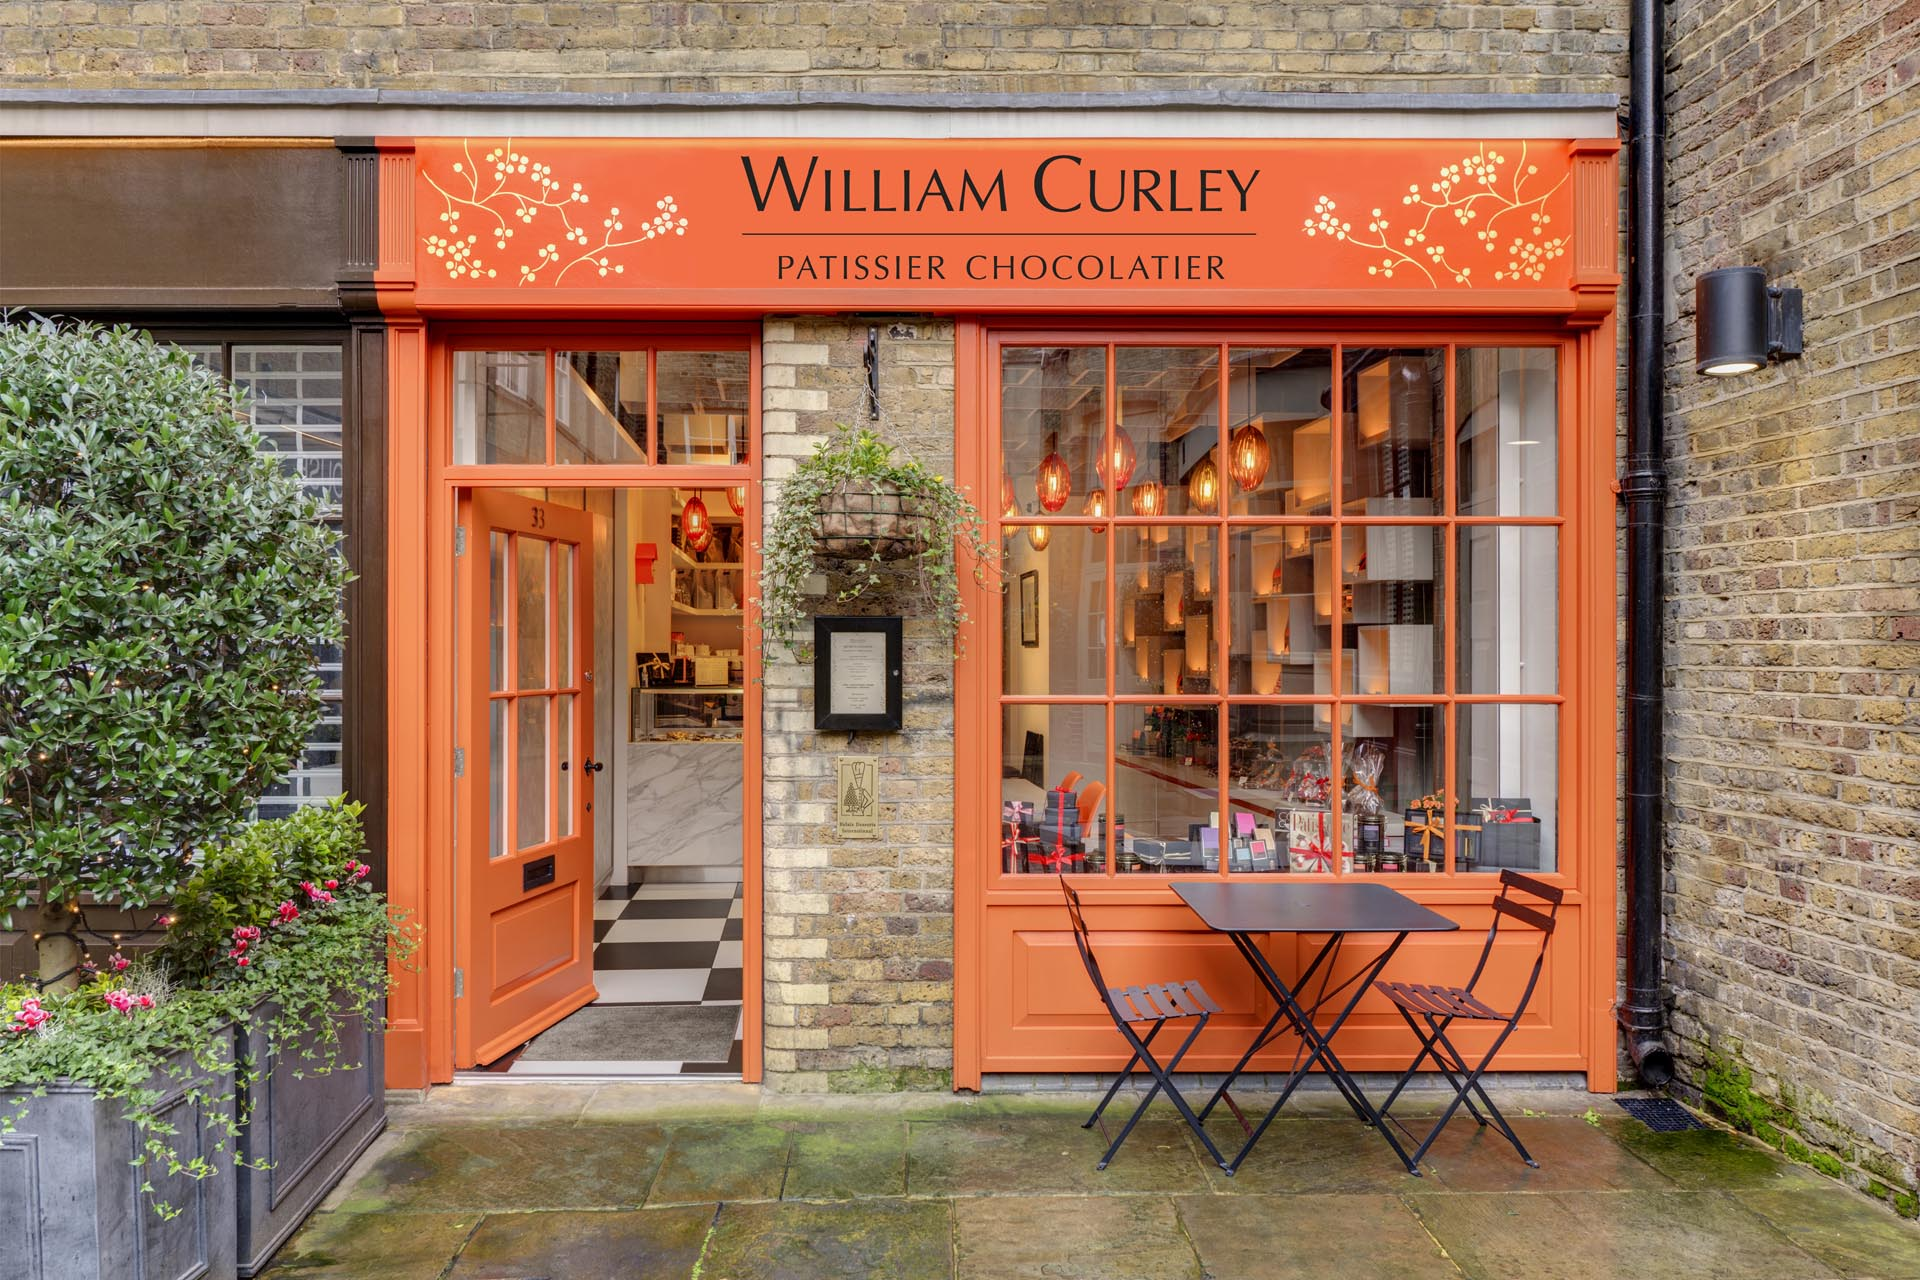 A modern chocolatier with a vivid orange facade that draws inspiration from the lid of the boxes the chocolates are packaged in.